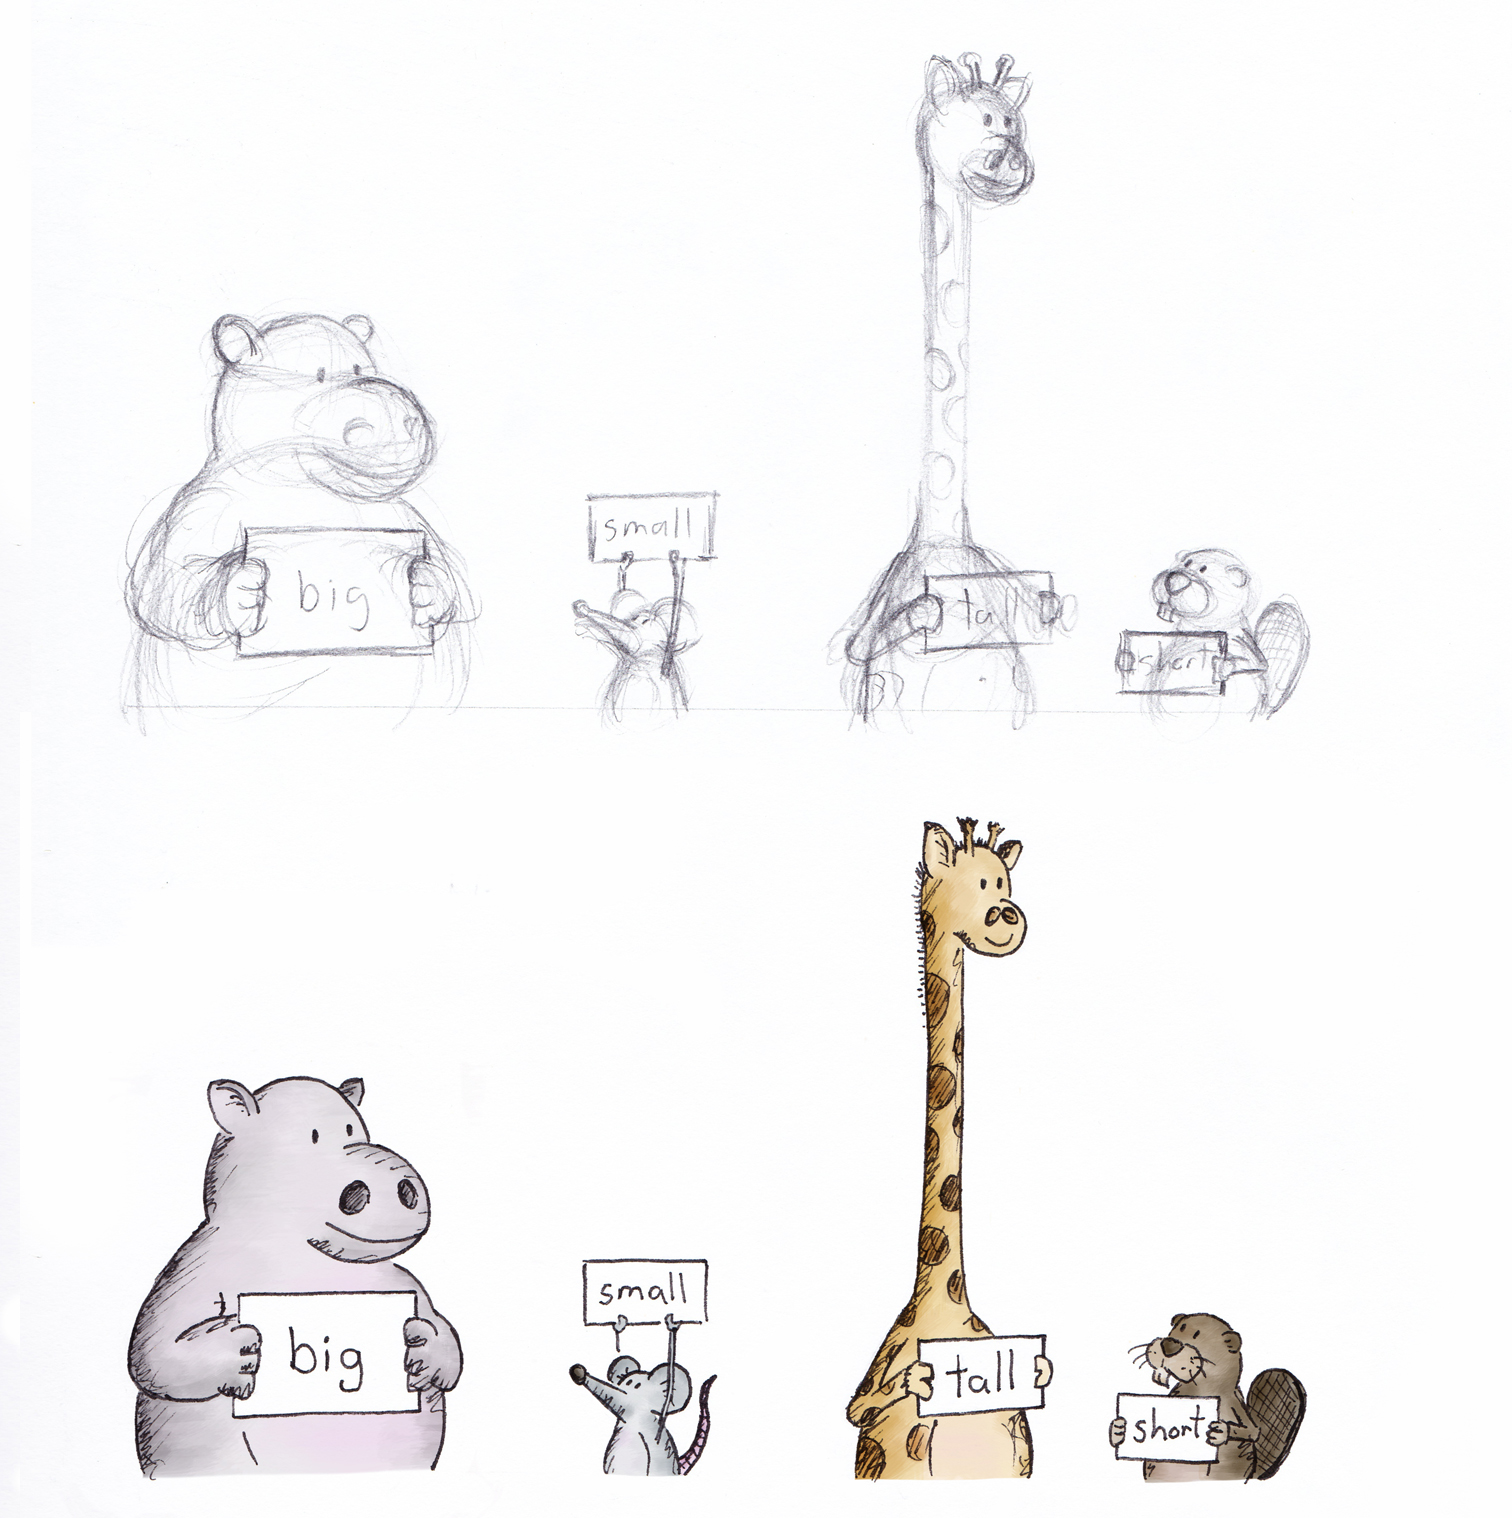 hippo, mouse, giraffe, beaver - rough sketch and coloured draft